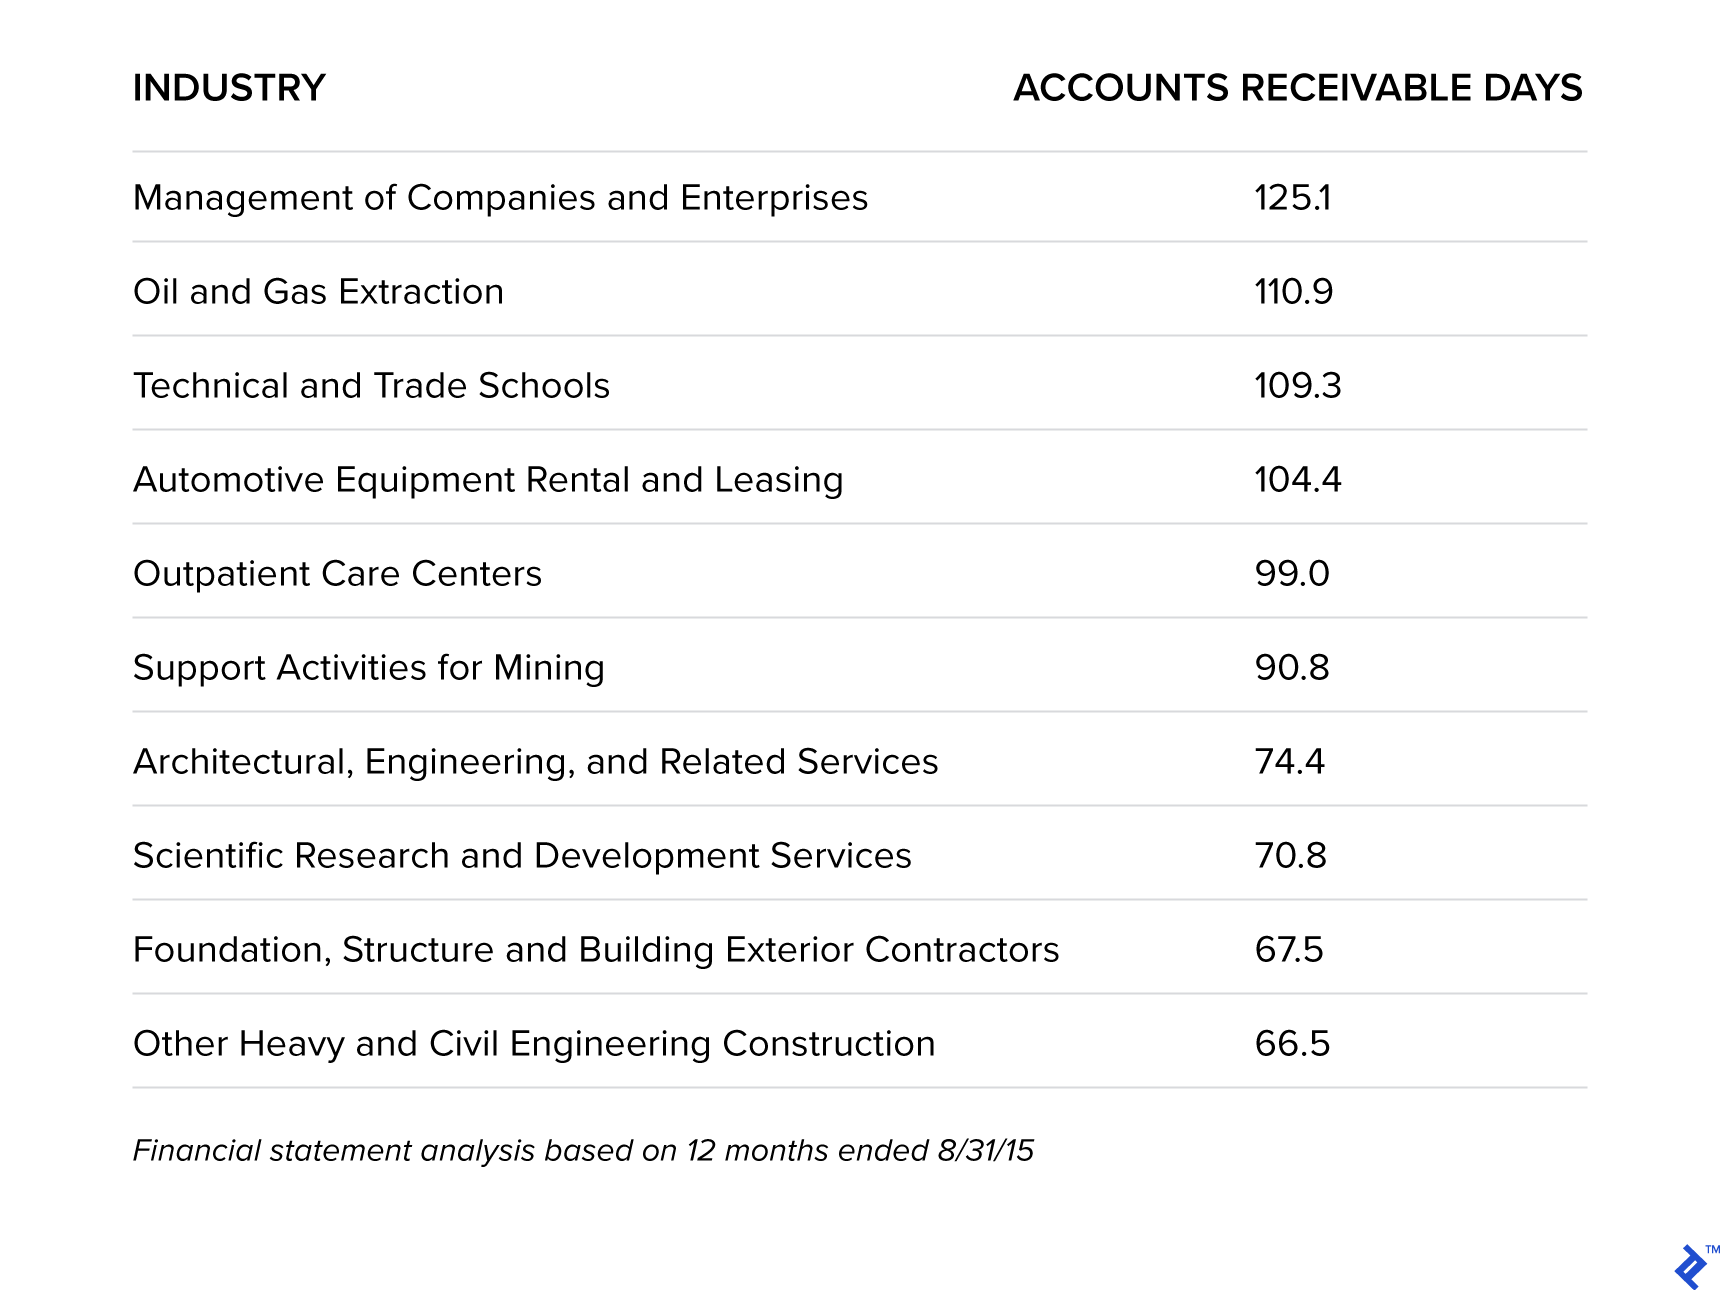 Industries That Wait the Longest to Be Paid - A list of industries in the US that have the longest days outstanding for receivables.